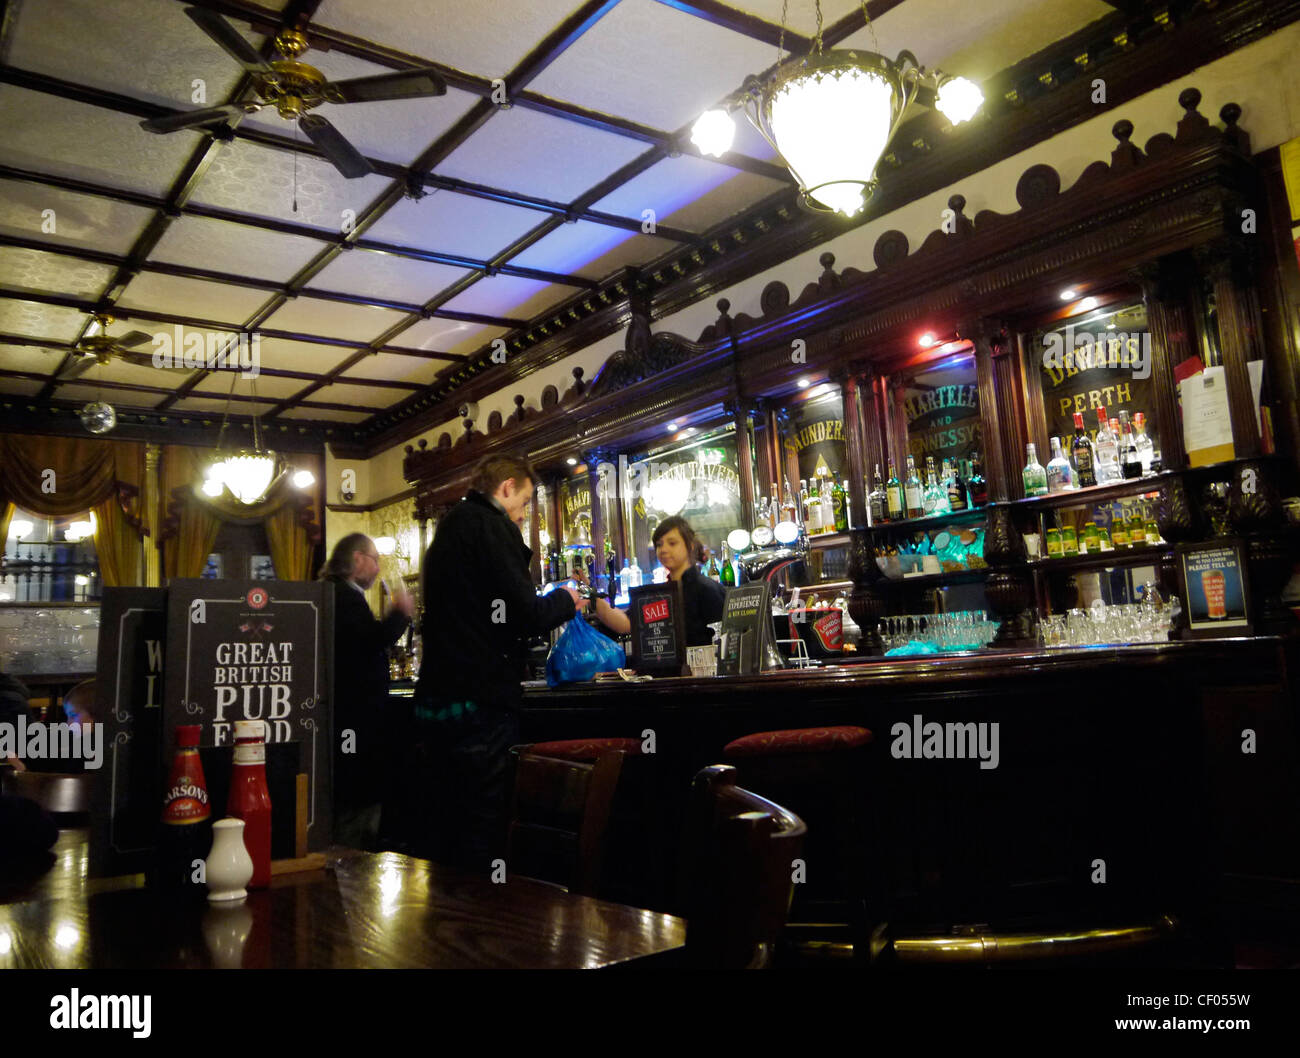 London Pub - Stock Image